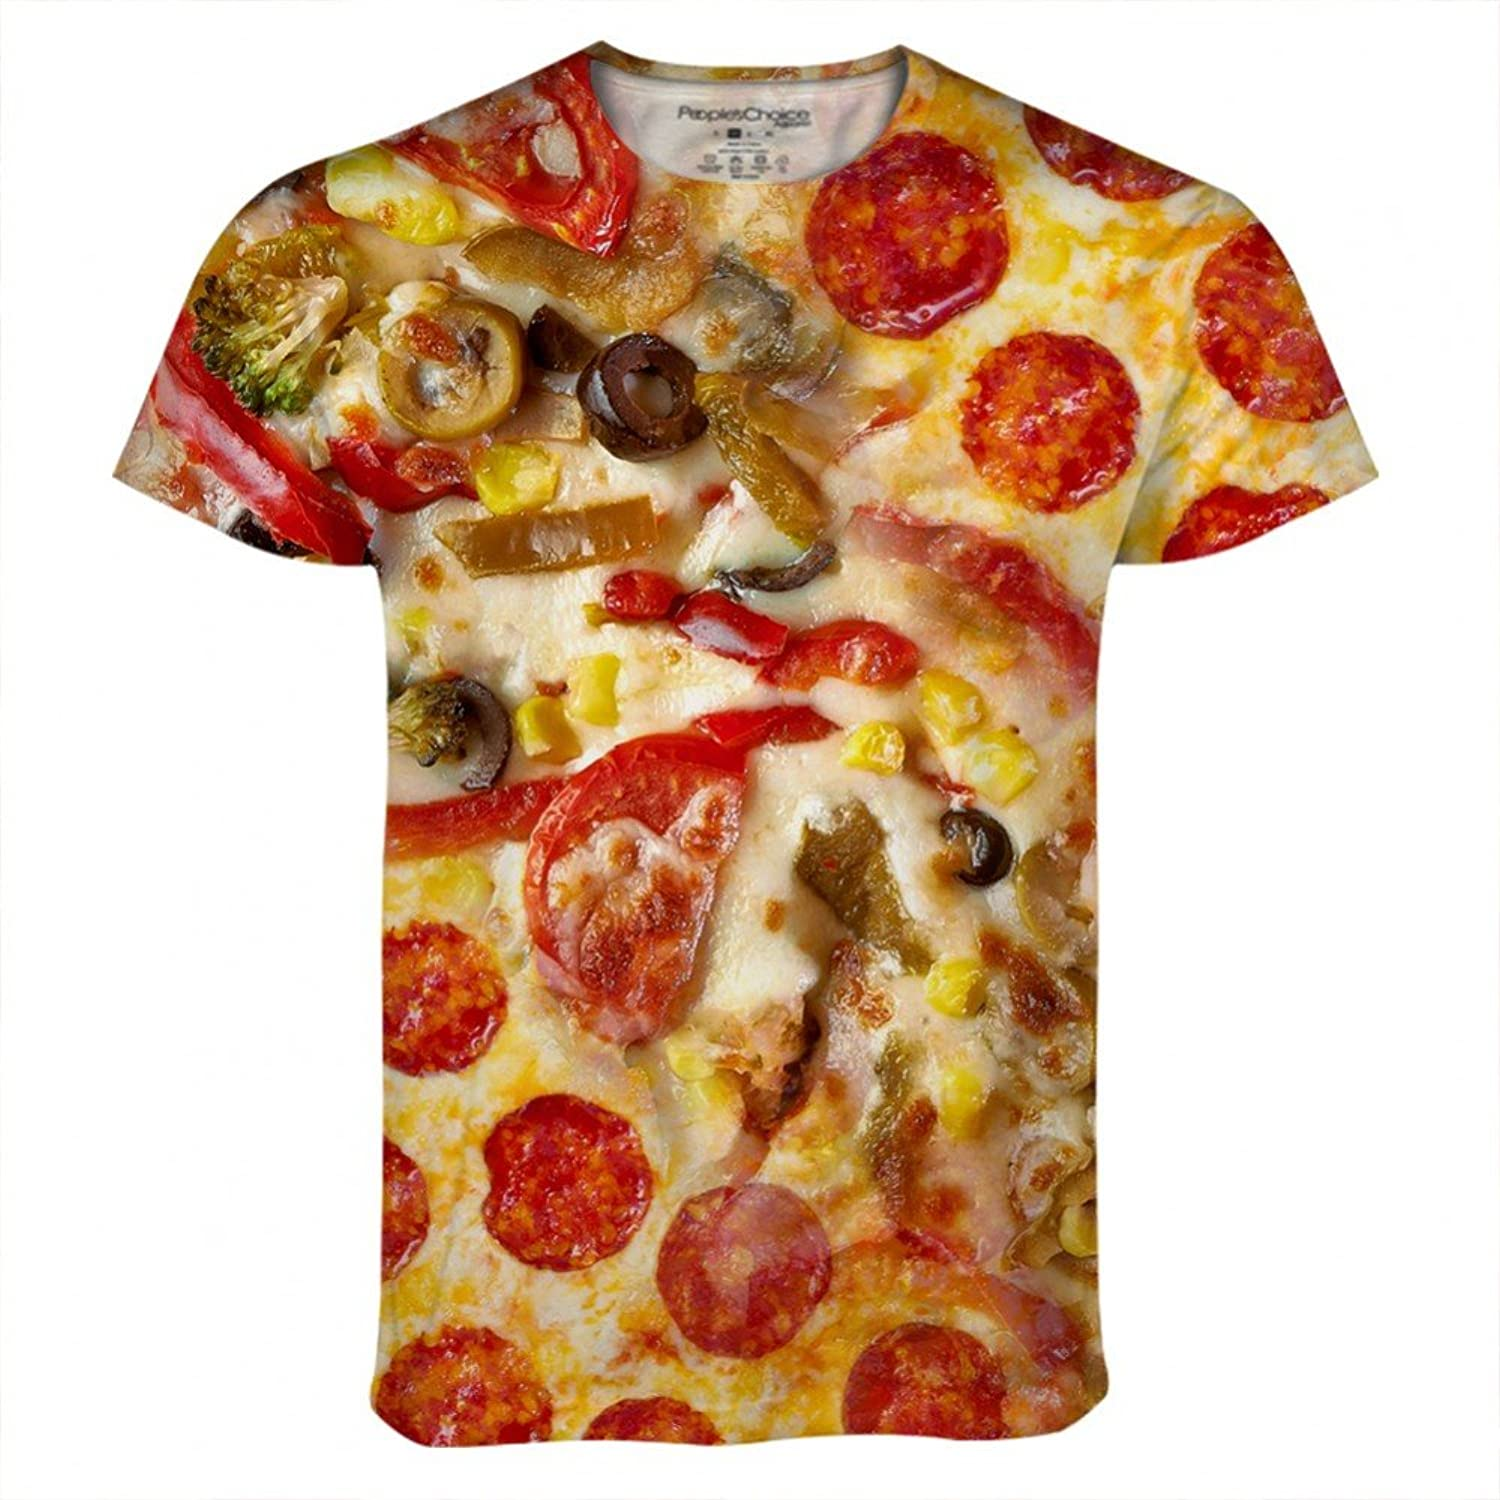 Pizza Supreme Pepperoni for Mens Tee by Peoples Choice Apparel